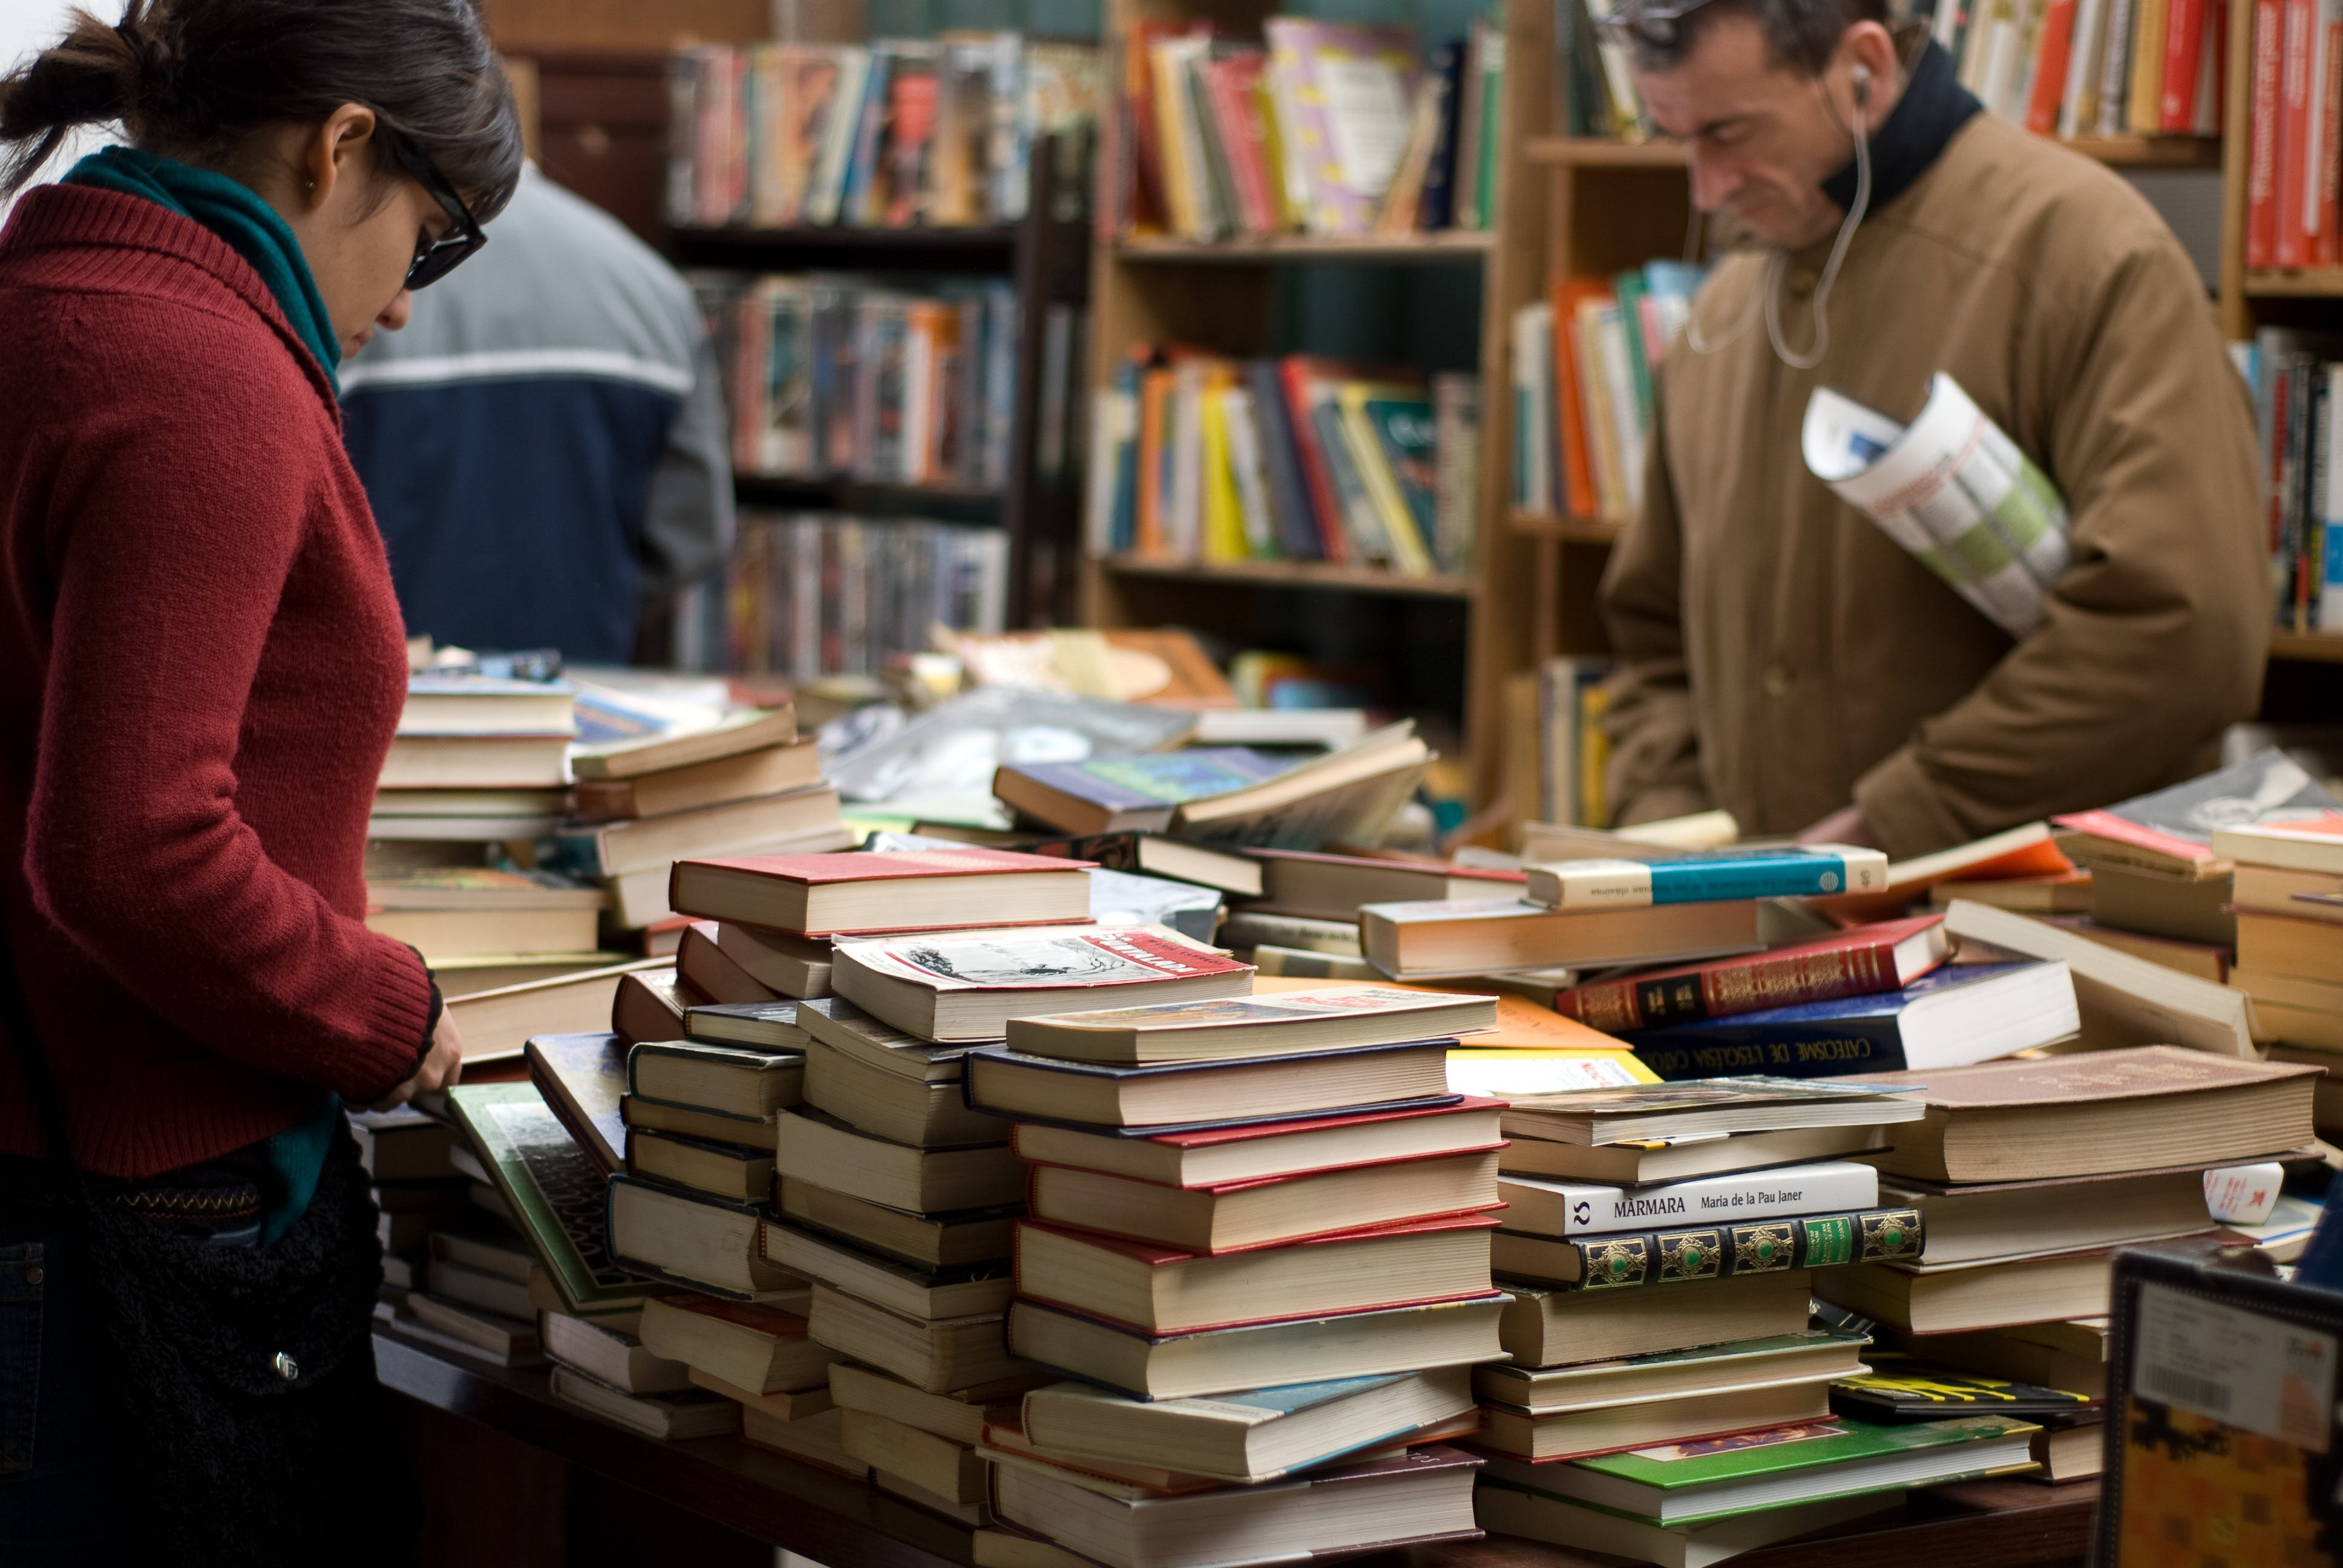 Woman and Man Standing Beside Piles of Books